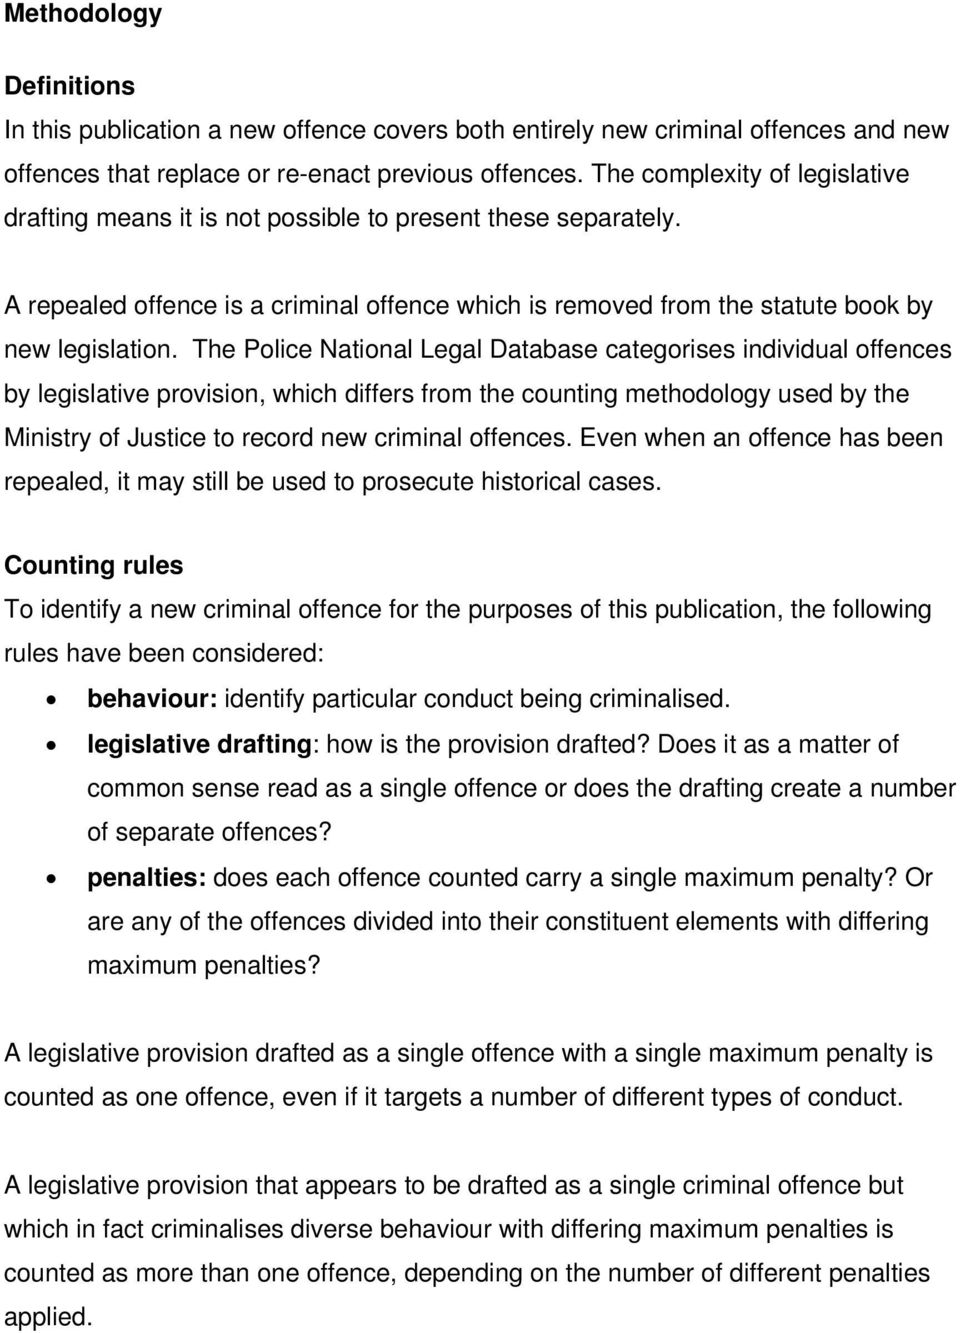 The Police National Legal Database categorises individual offences by legislative provision, which differs from the counting methodology used by the Ministry of Justice to record new criminal